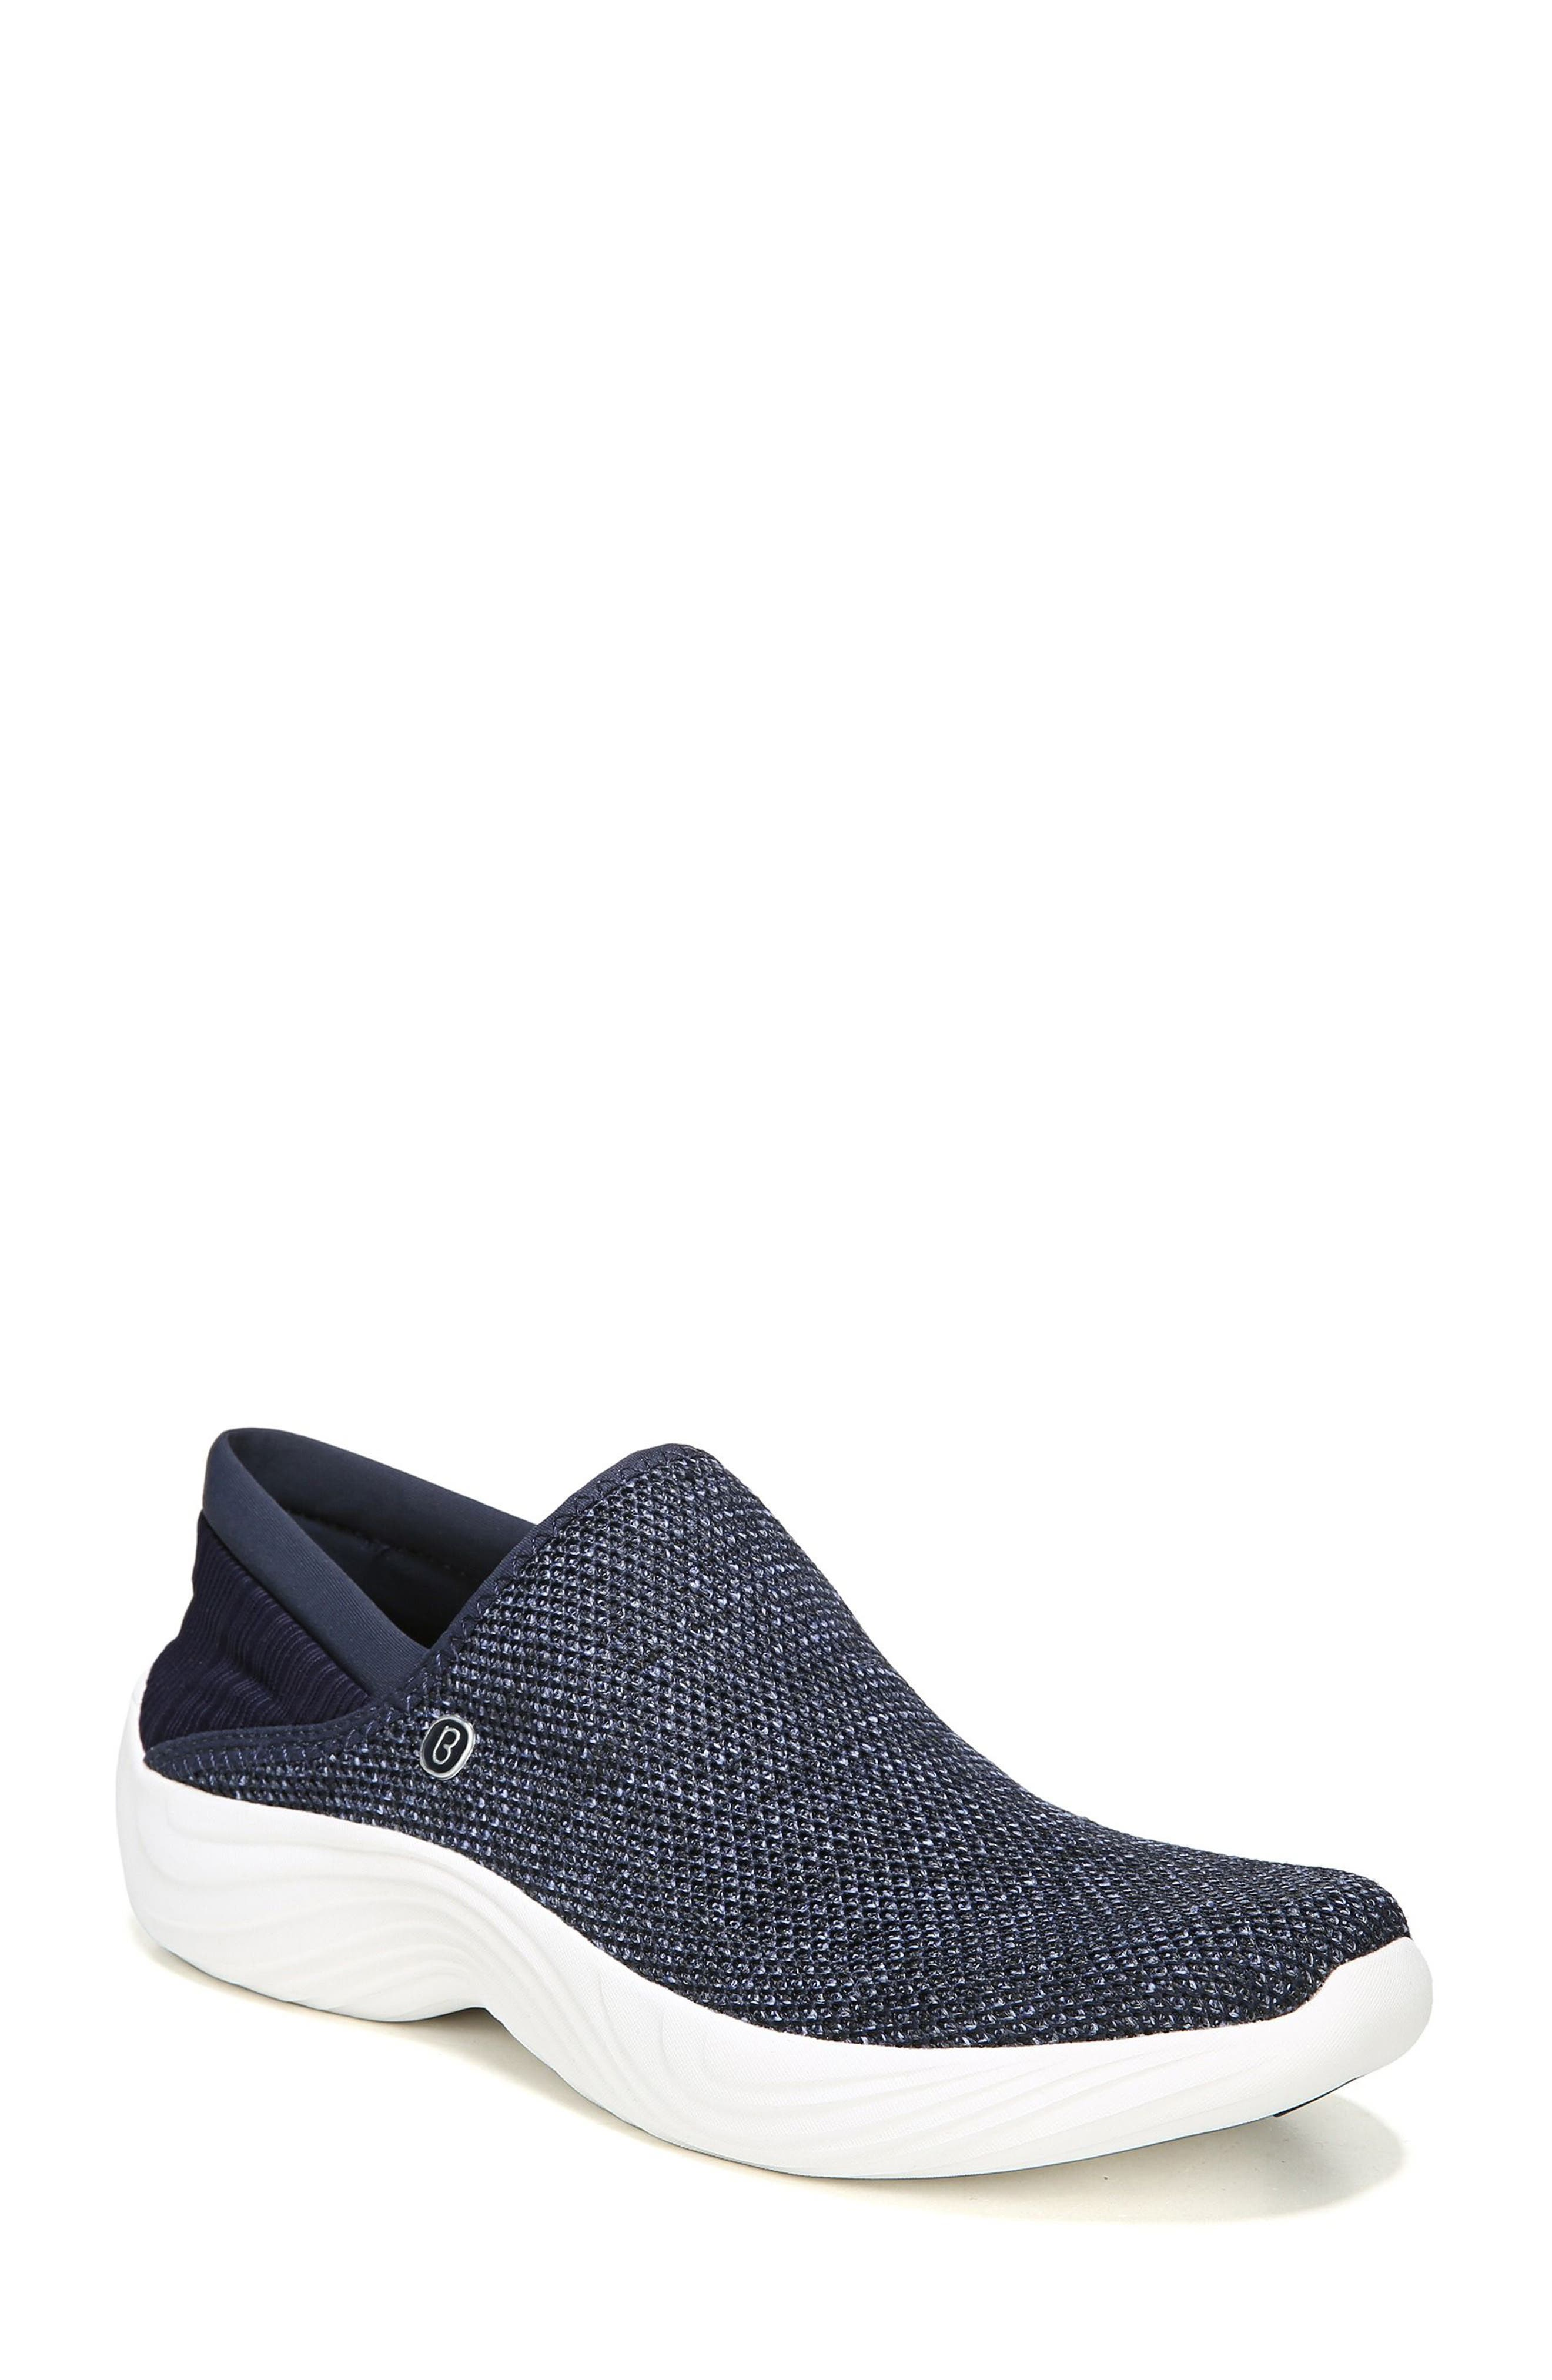 Topaz Slip-On Sneaker,                             Main thumbnail 1, color,                             Navy Fabric